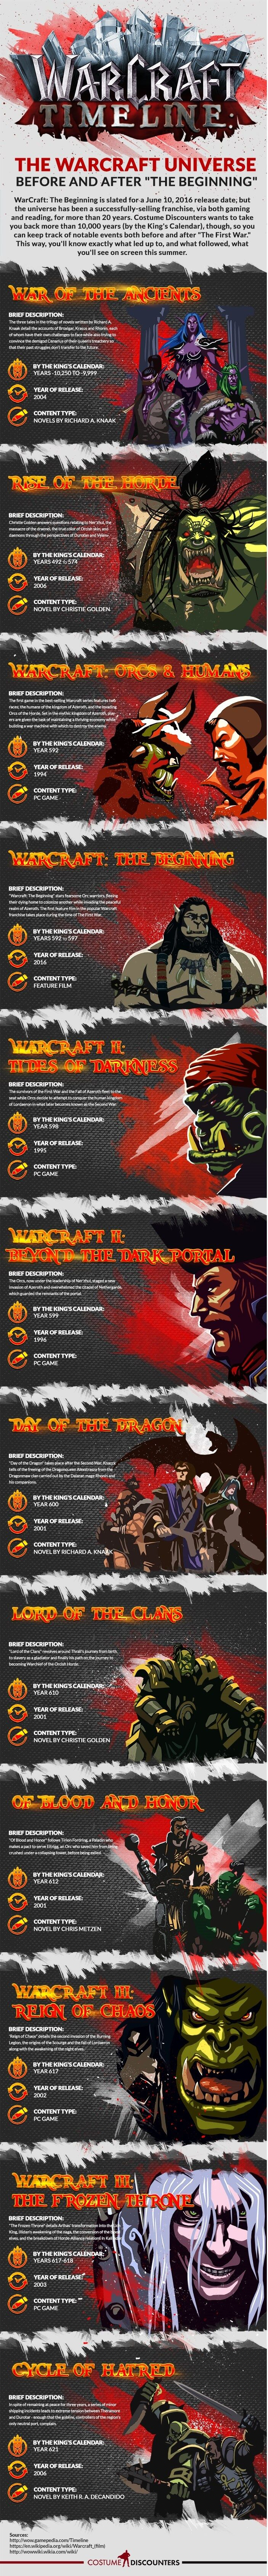 Warcraft Libros History Of War Timeline Of The World Of Warcraft Infographic